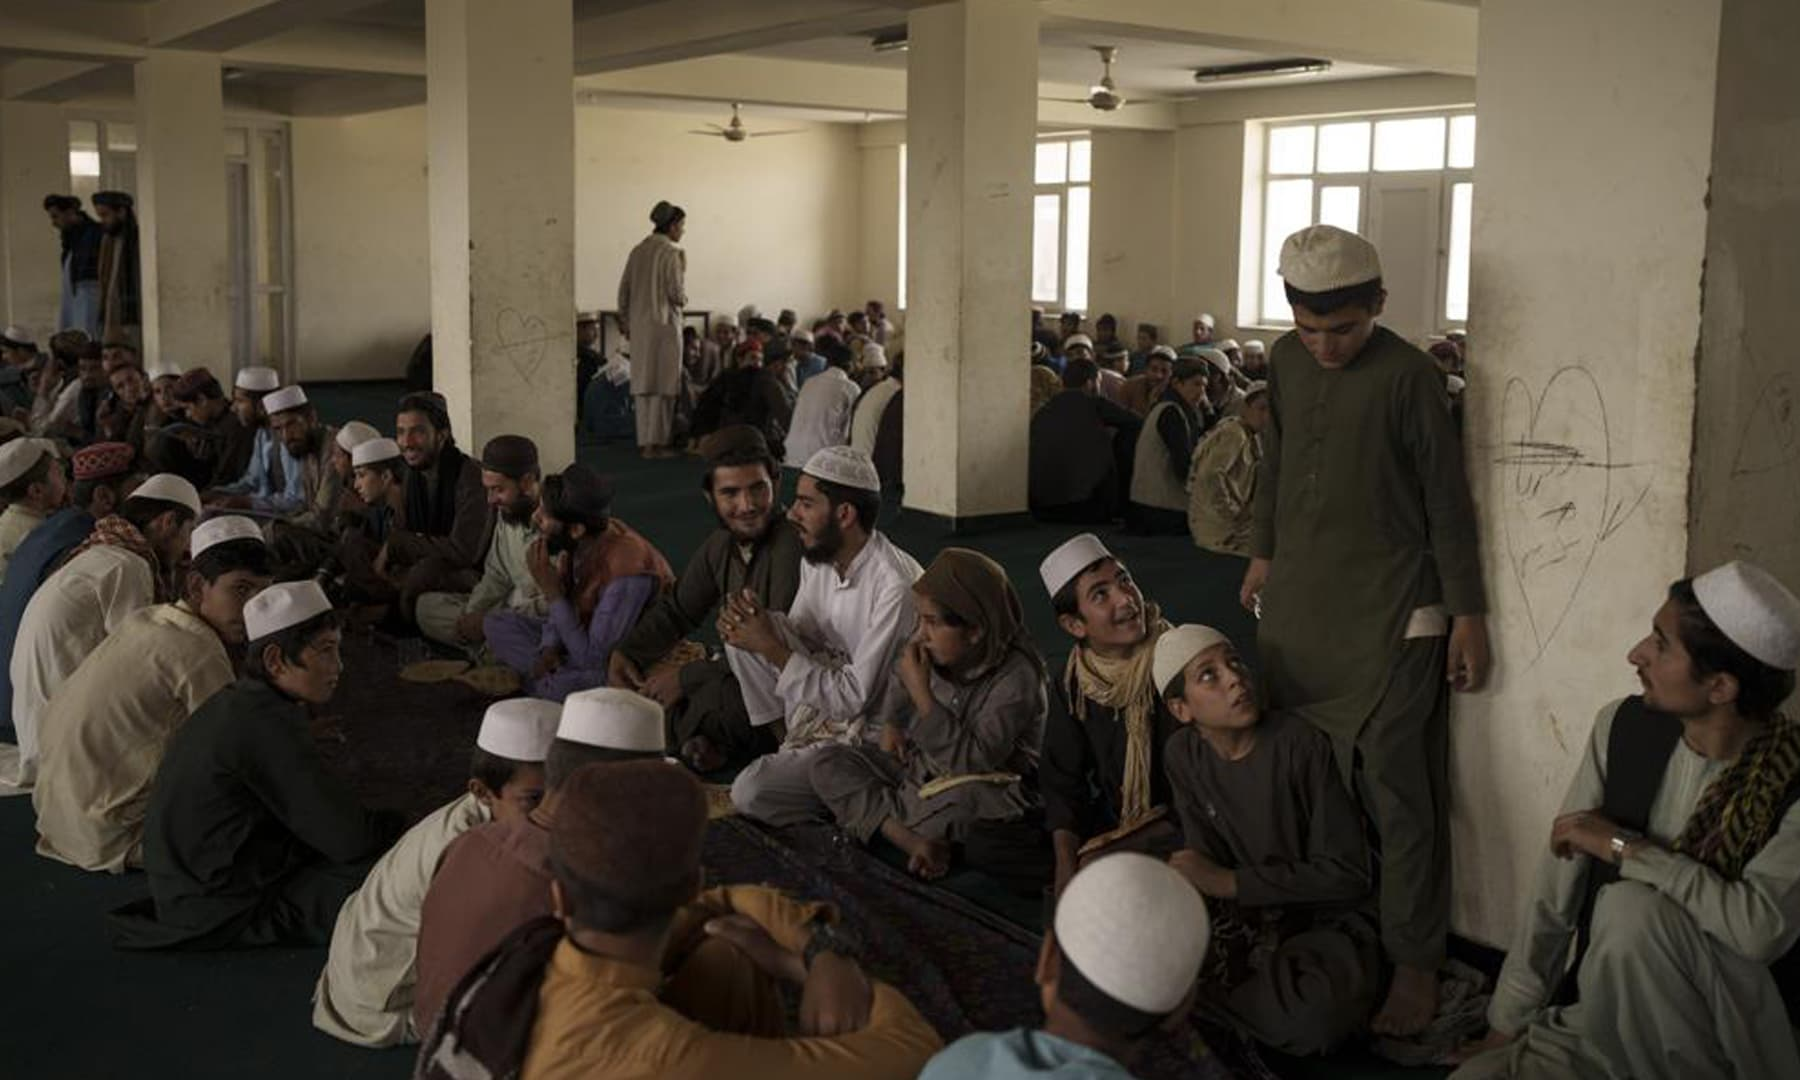 Afghan students wait for breakfast to be served at the dining hall of the Khatamul Anbiya madressah in Kabul, Afghanistan. — AP